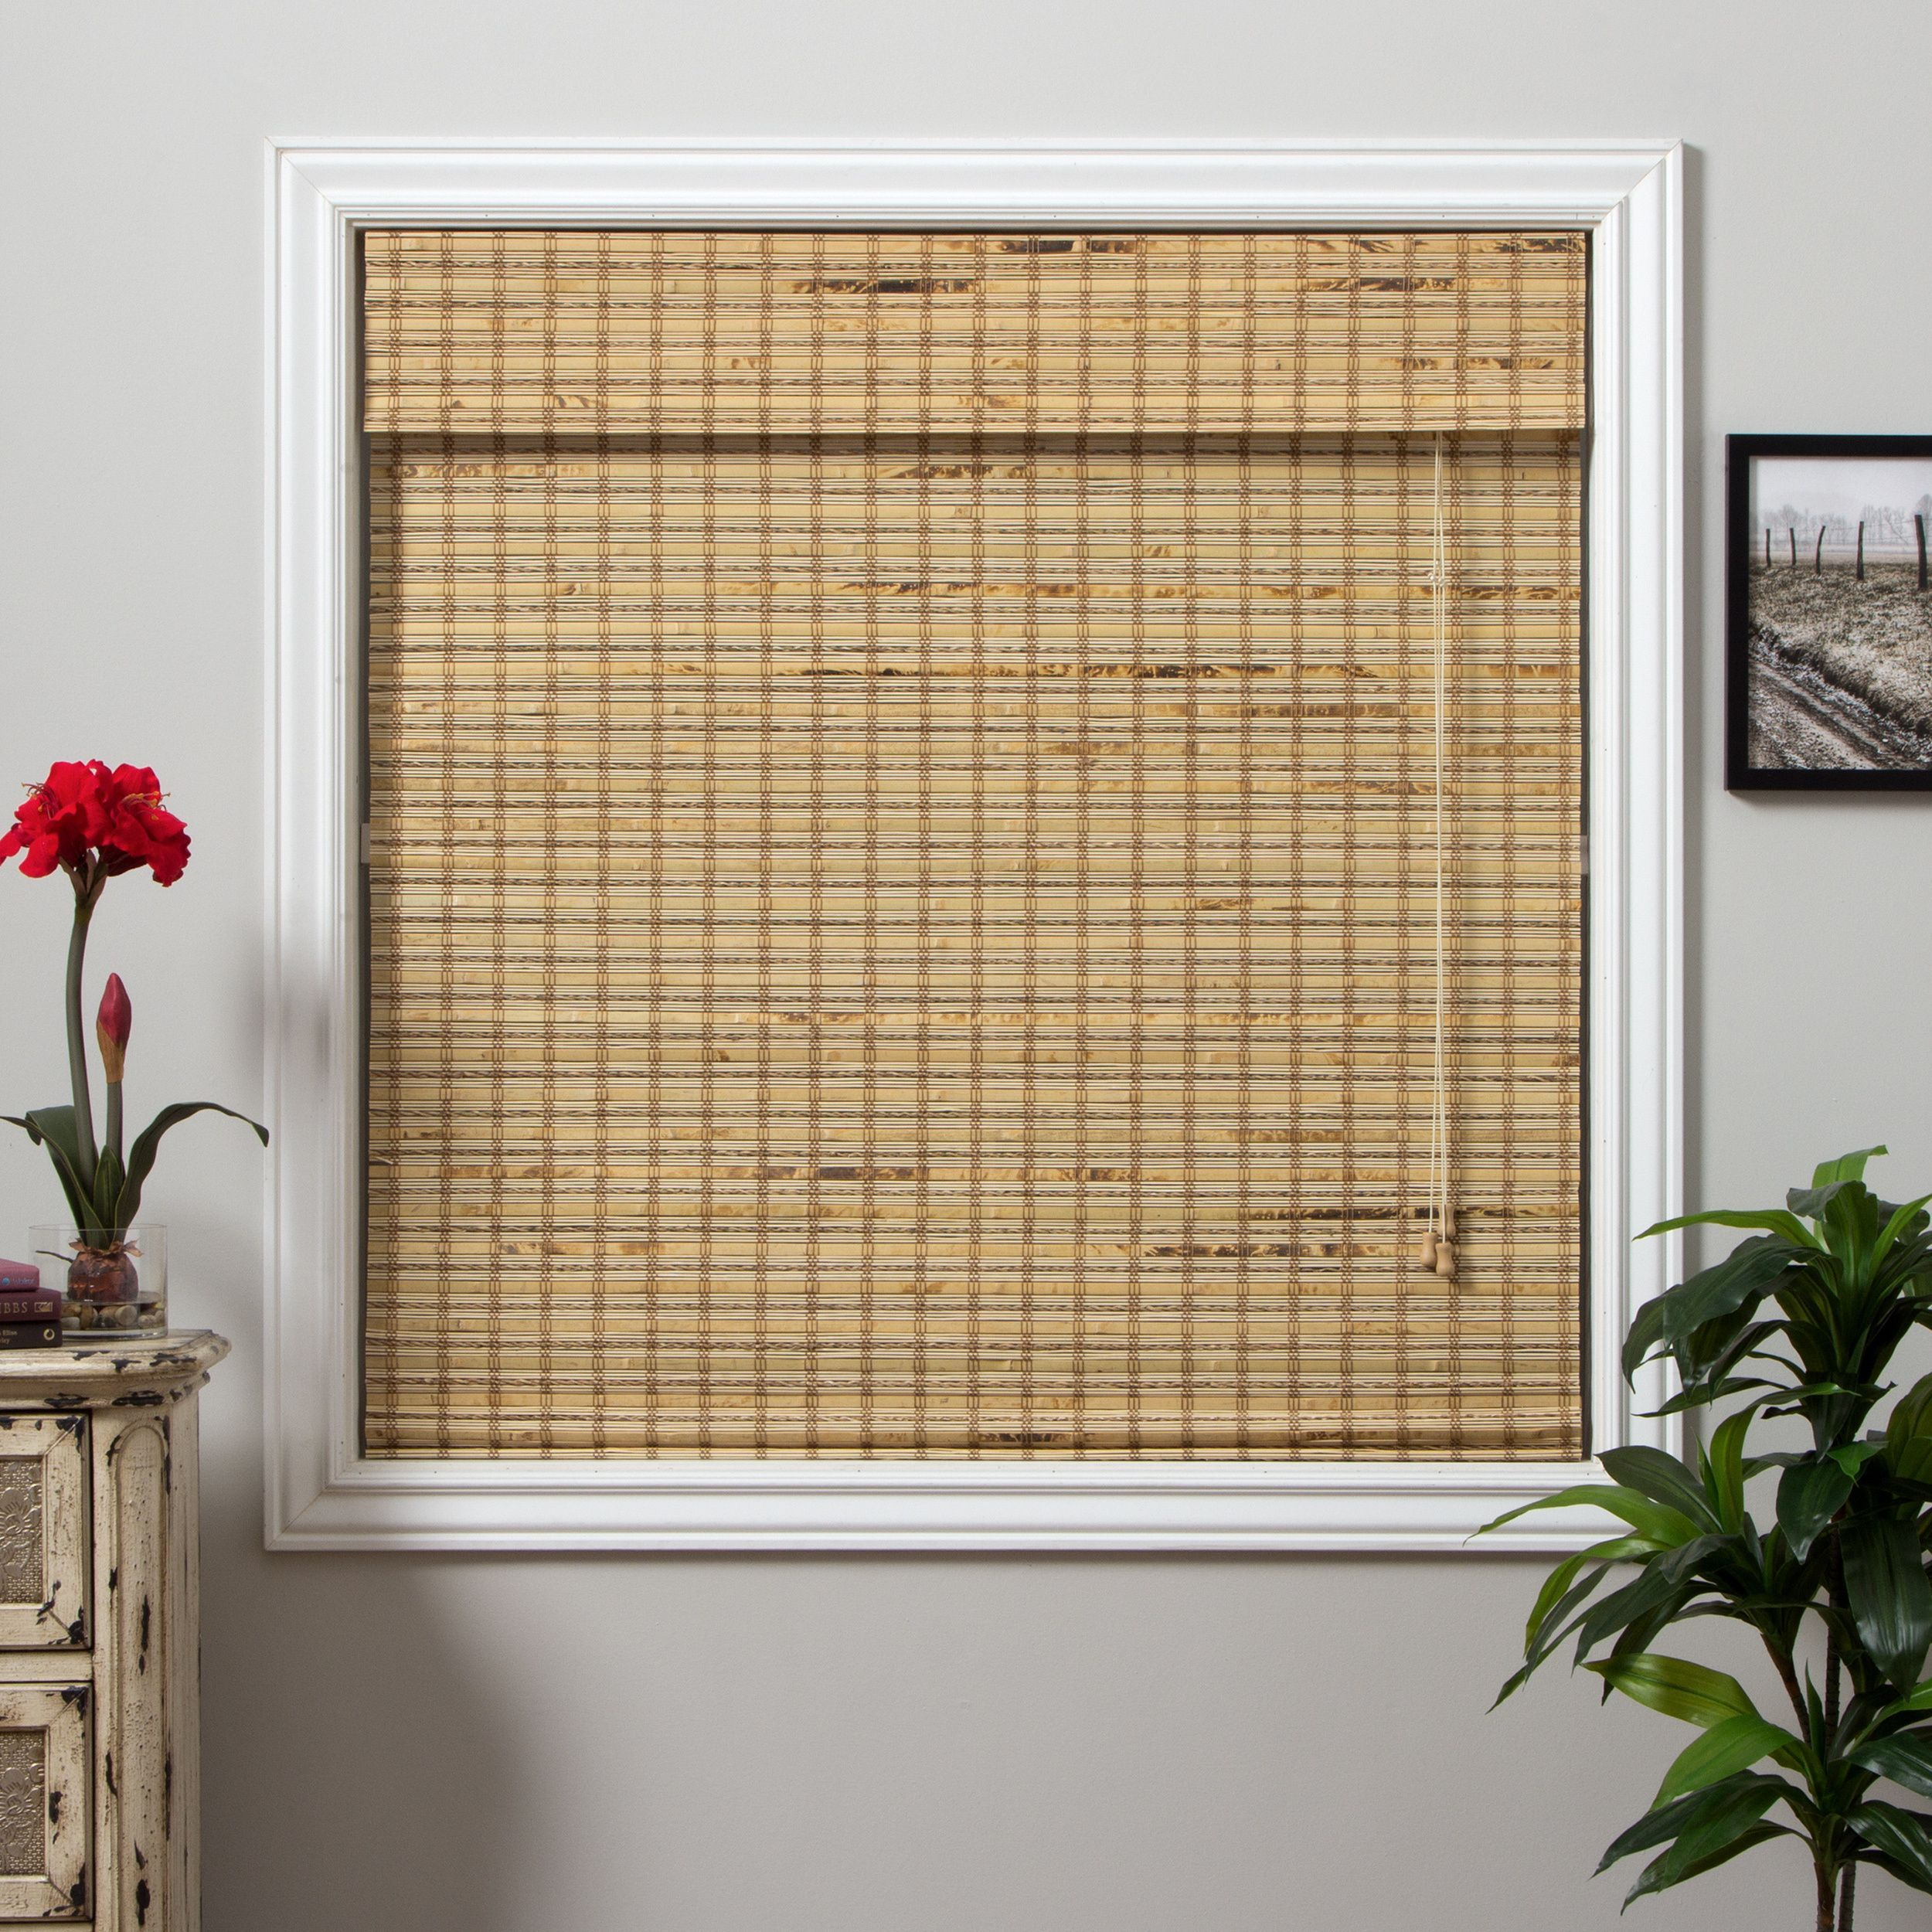 Arlo Blinds Mandalin Bamboo 54 Inch Long Roman Shade 22 In X 54 In Brown Size 22 X 54 Wood Bamboo Roman Shades Shades Blinds Outdoor Bamboo Shades